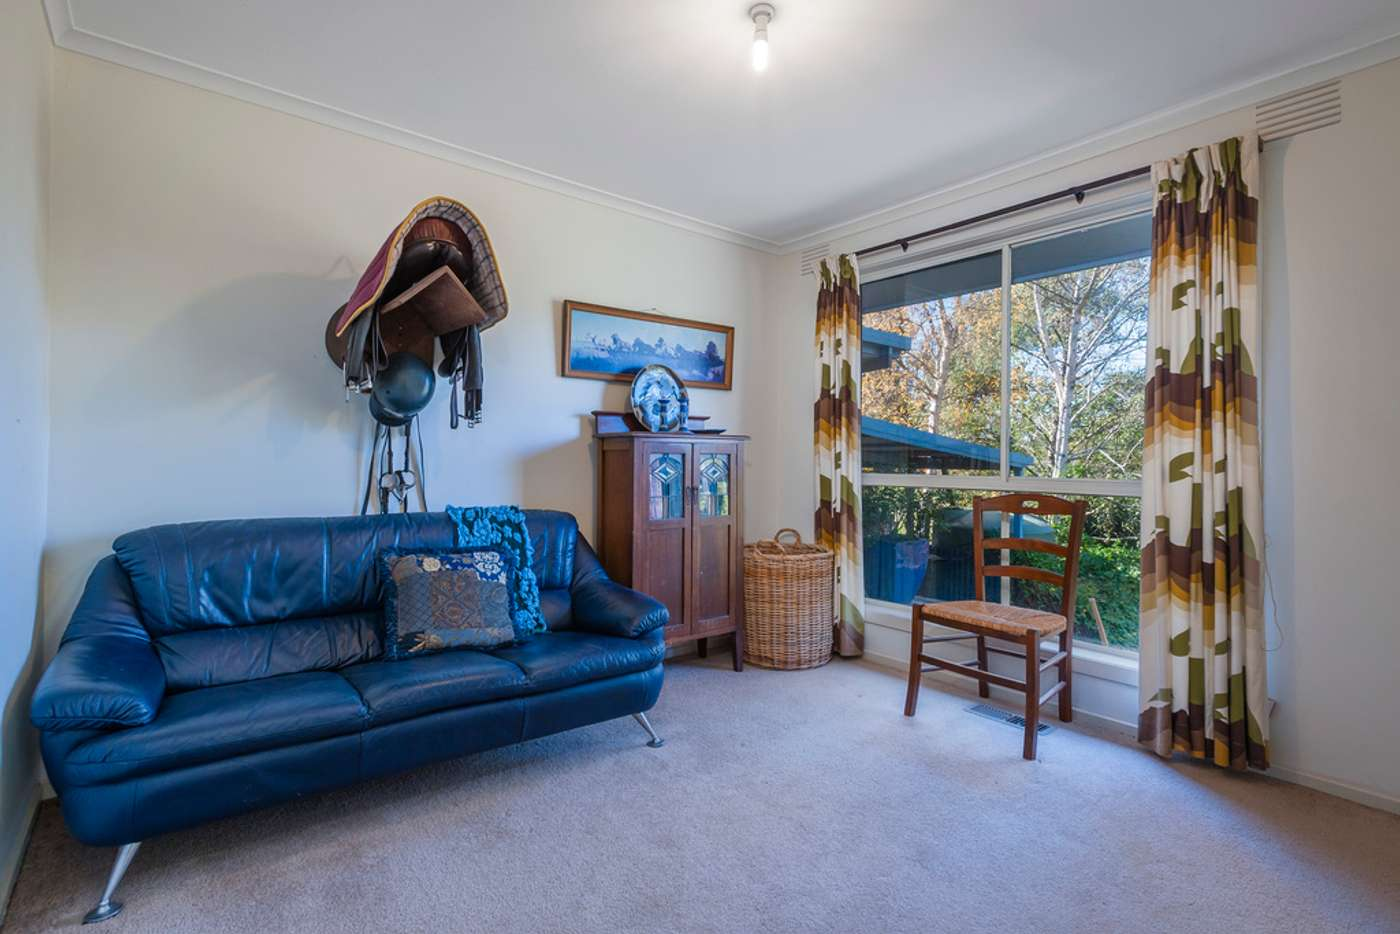 Fifth view of Homely house listing, 8 Scott Street, Macedon VIC 3440